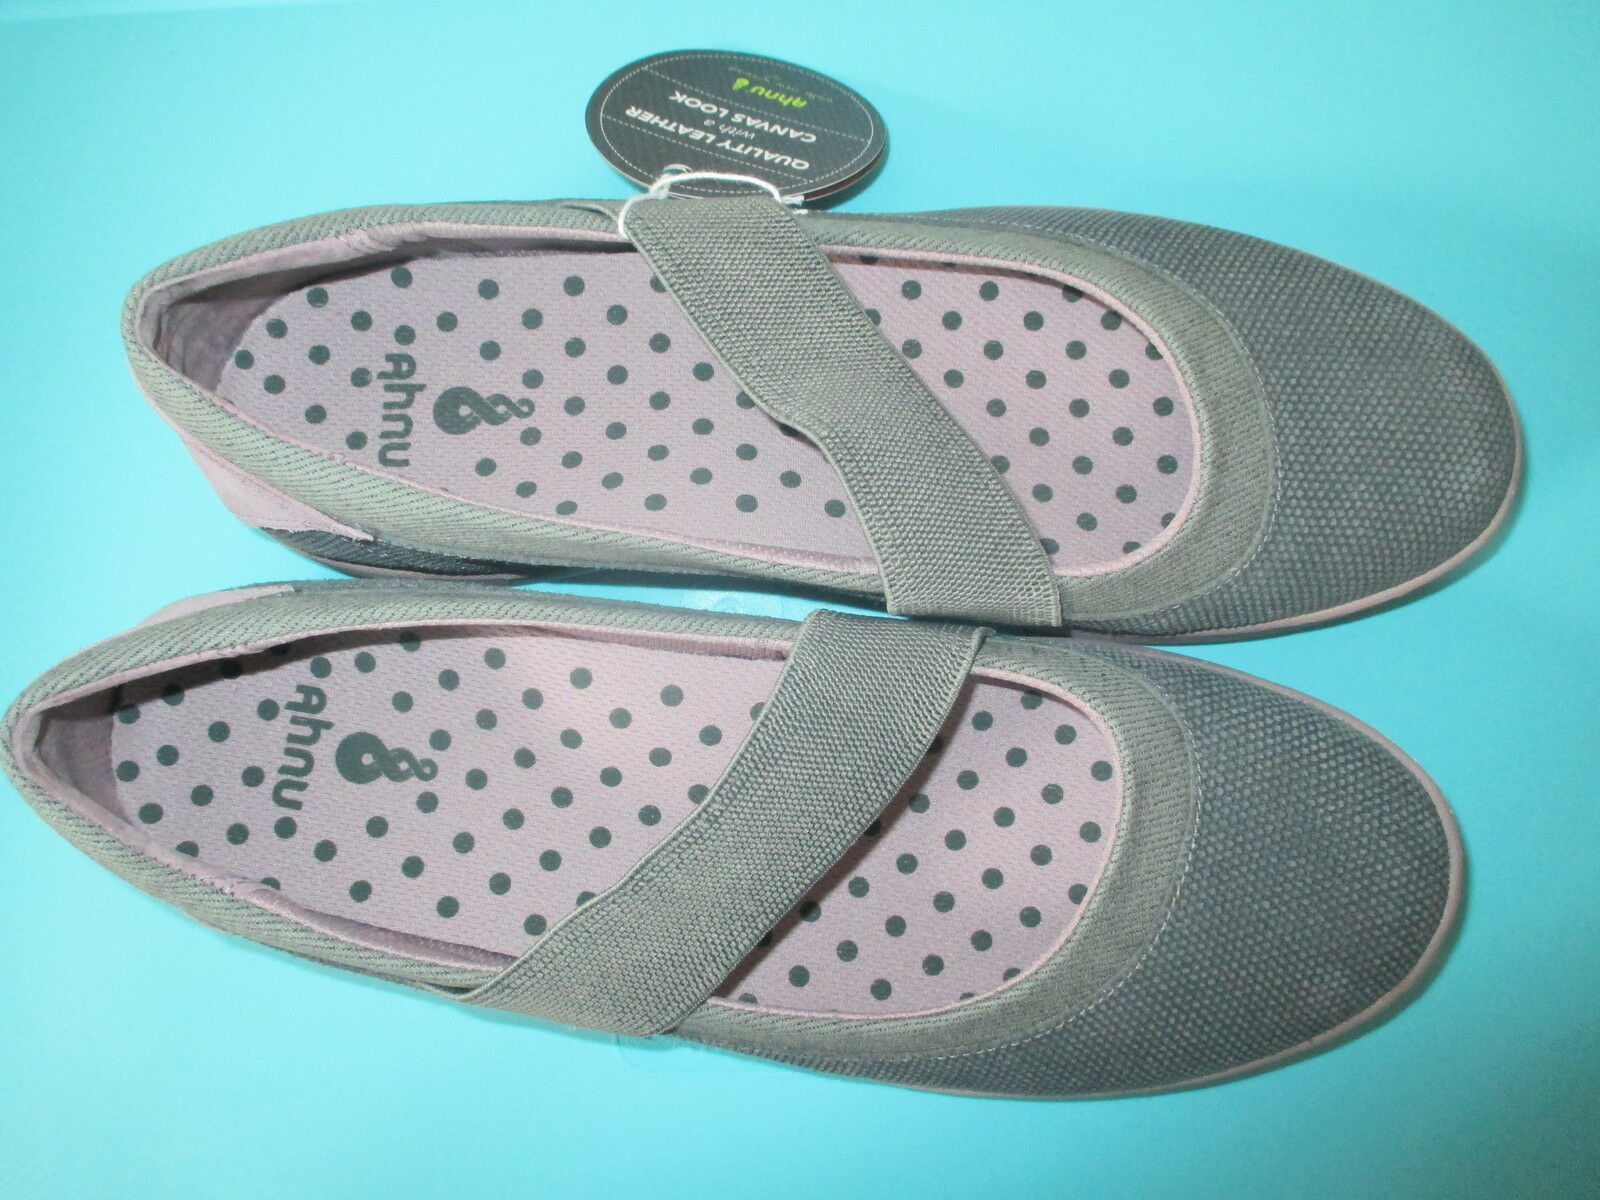 NEW Ahnu Telegraph Slip On SHOES FLATS 10.5 41.5  99 Retail Leather Grey